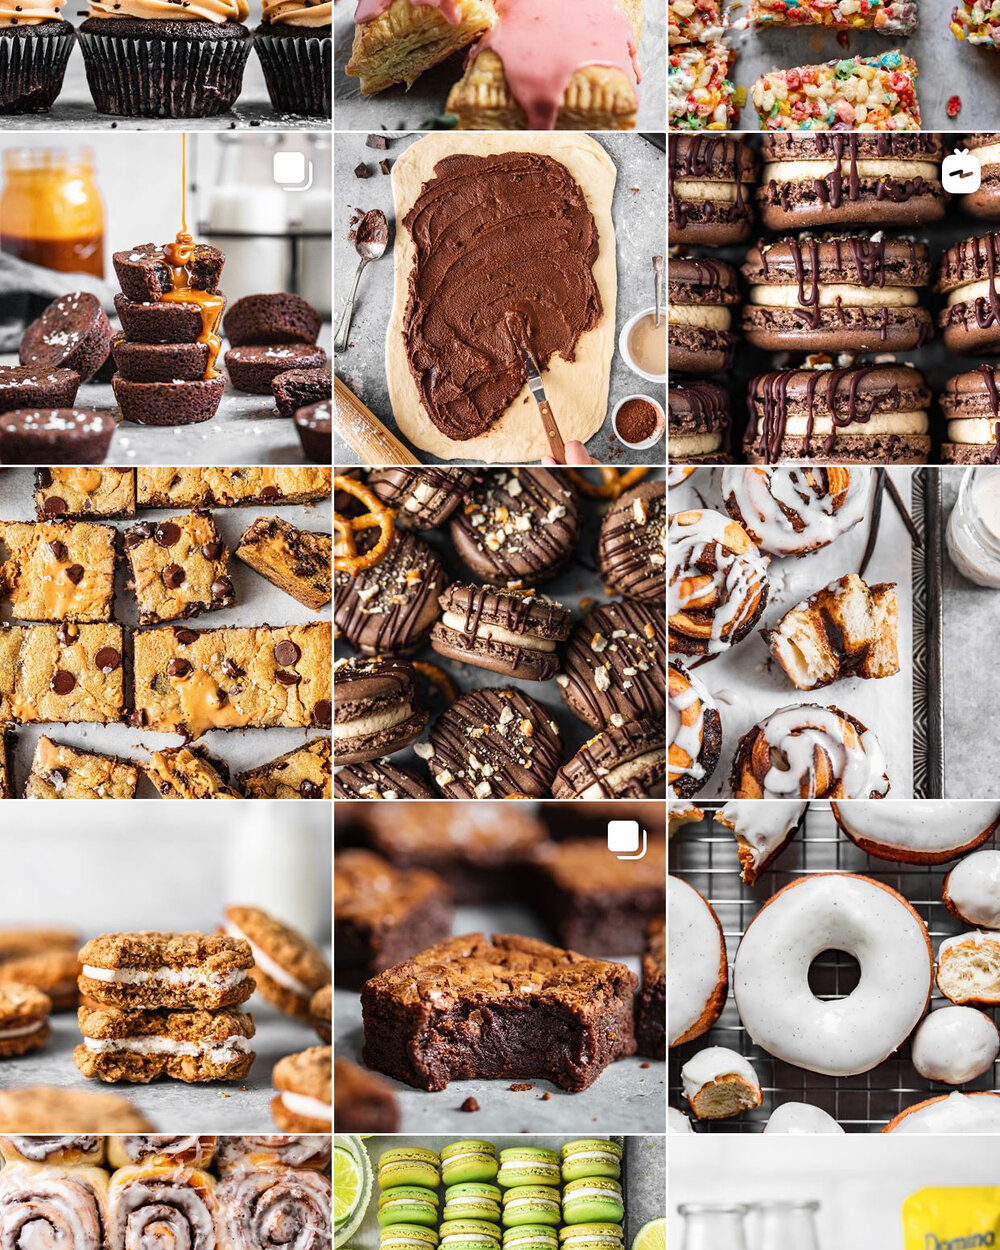 """- Mike Bakes NYCA """"baking blog for dessert lovers"""" by NYC based photographer, recipe developer and LAWYER Mike Johnson."""